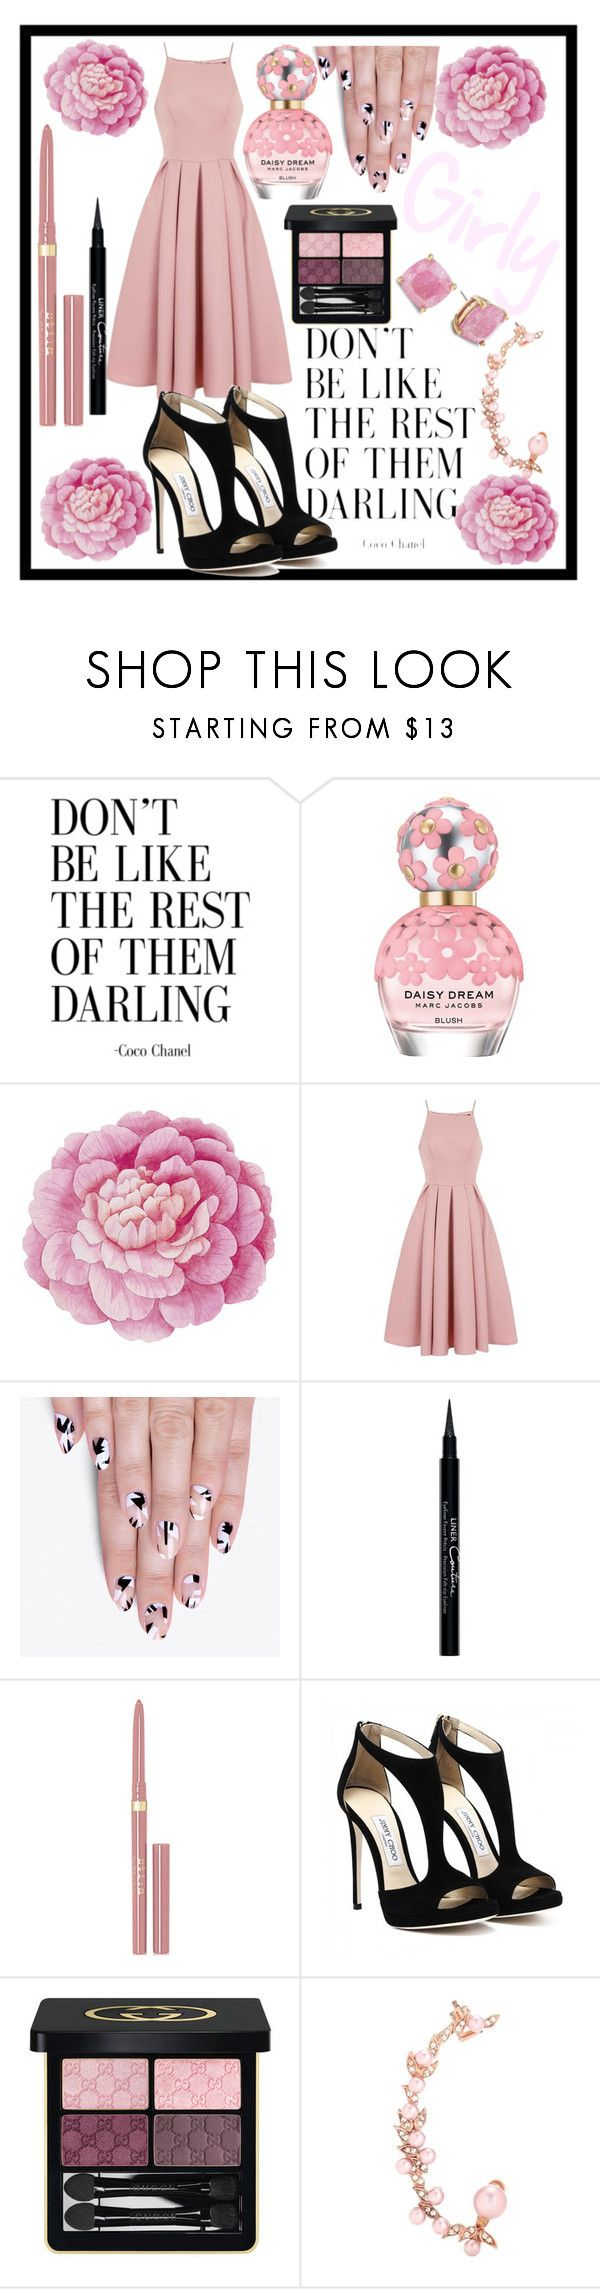 """""""Girly Pink"""" by leanovee ❤ liked on Polyvore featuring Marc Jacobs, Ballard Designs, Chi Chi, alfa.K, Givenchy, Stila, Gucci, Joanna Laura Constantine and Kate Spade"""